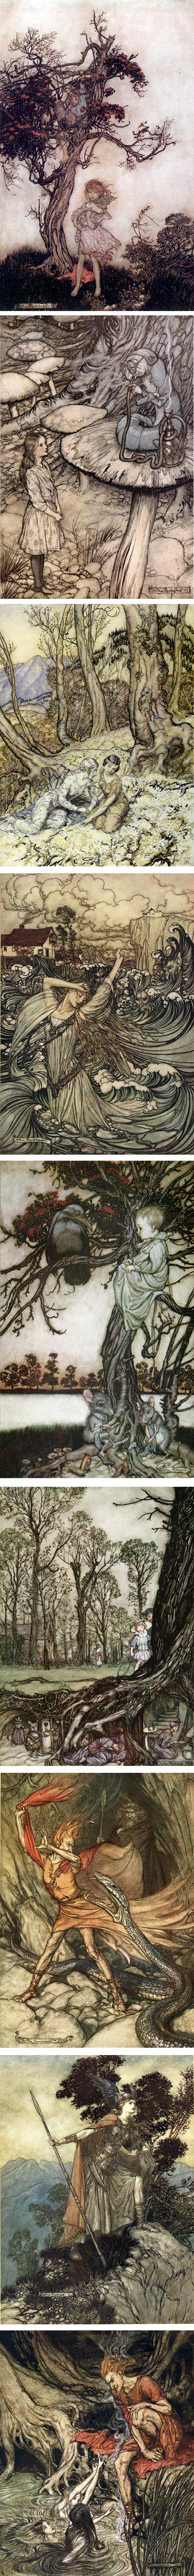 Arthur Rackham: Rip van Winkle, Alice's Adventures in Wonderland, Peter Pan in Kensington Gardens, Undine, The Ring of the Niblung